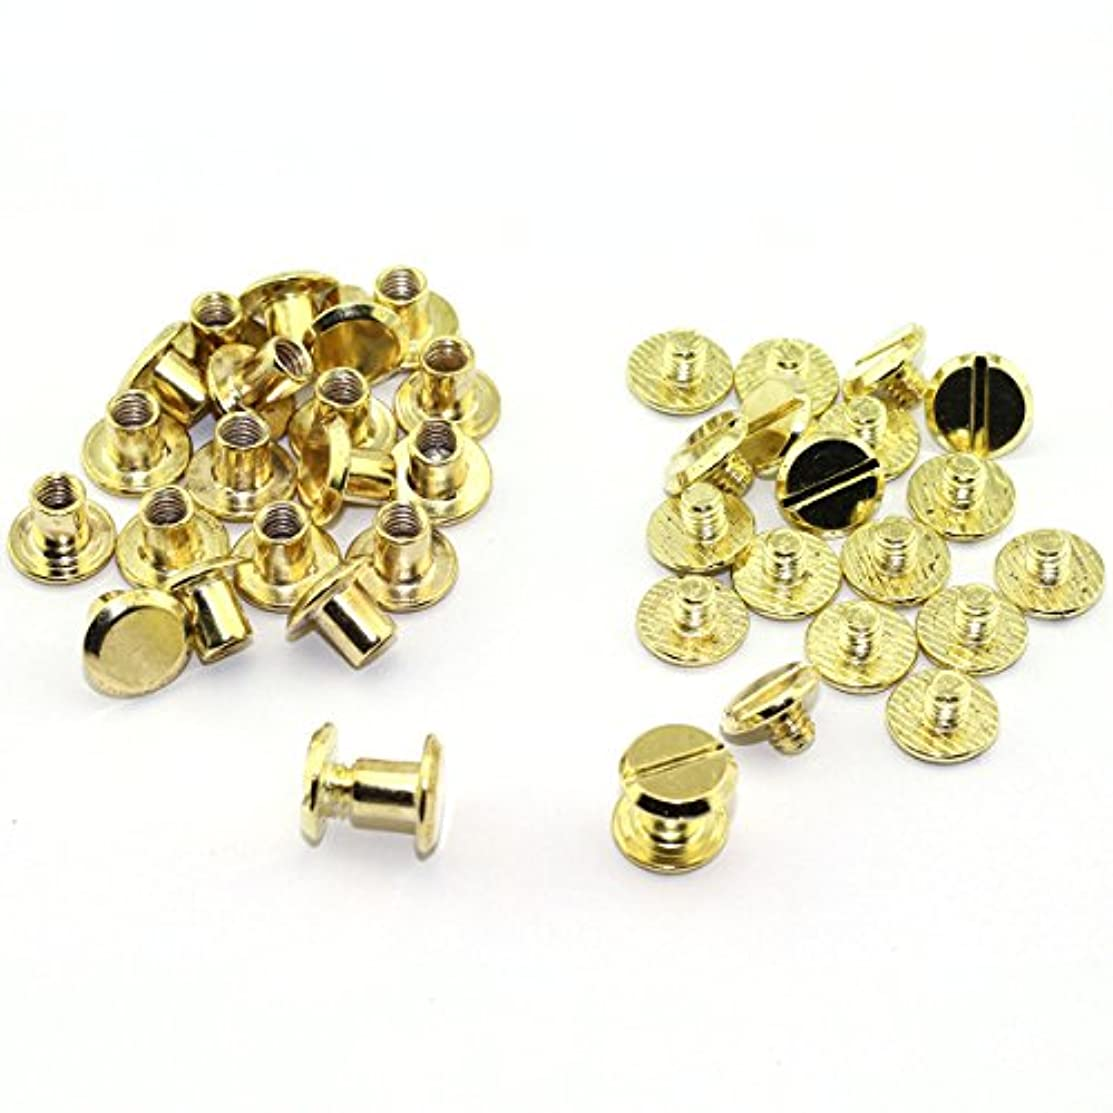 100 Pack Gold Chicago Screws Metal Accessories Carbon Steel Nail Rivet Chicago Button for DIY Leather Decoration Document Book Album Bookbinding Round Flat Head Stud Screw